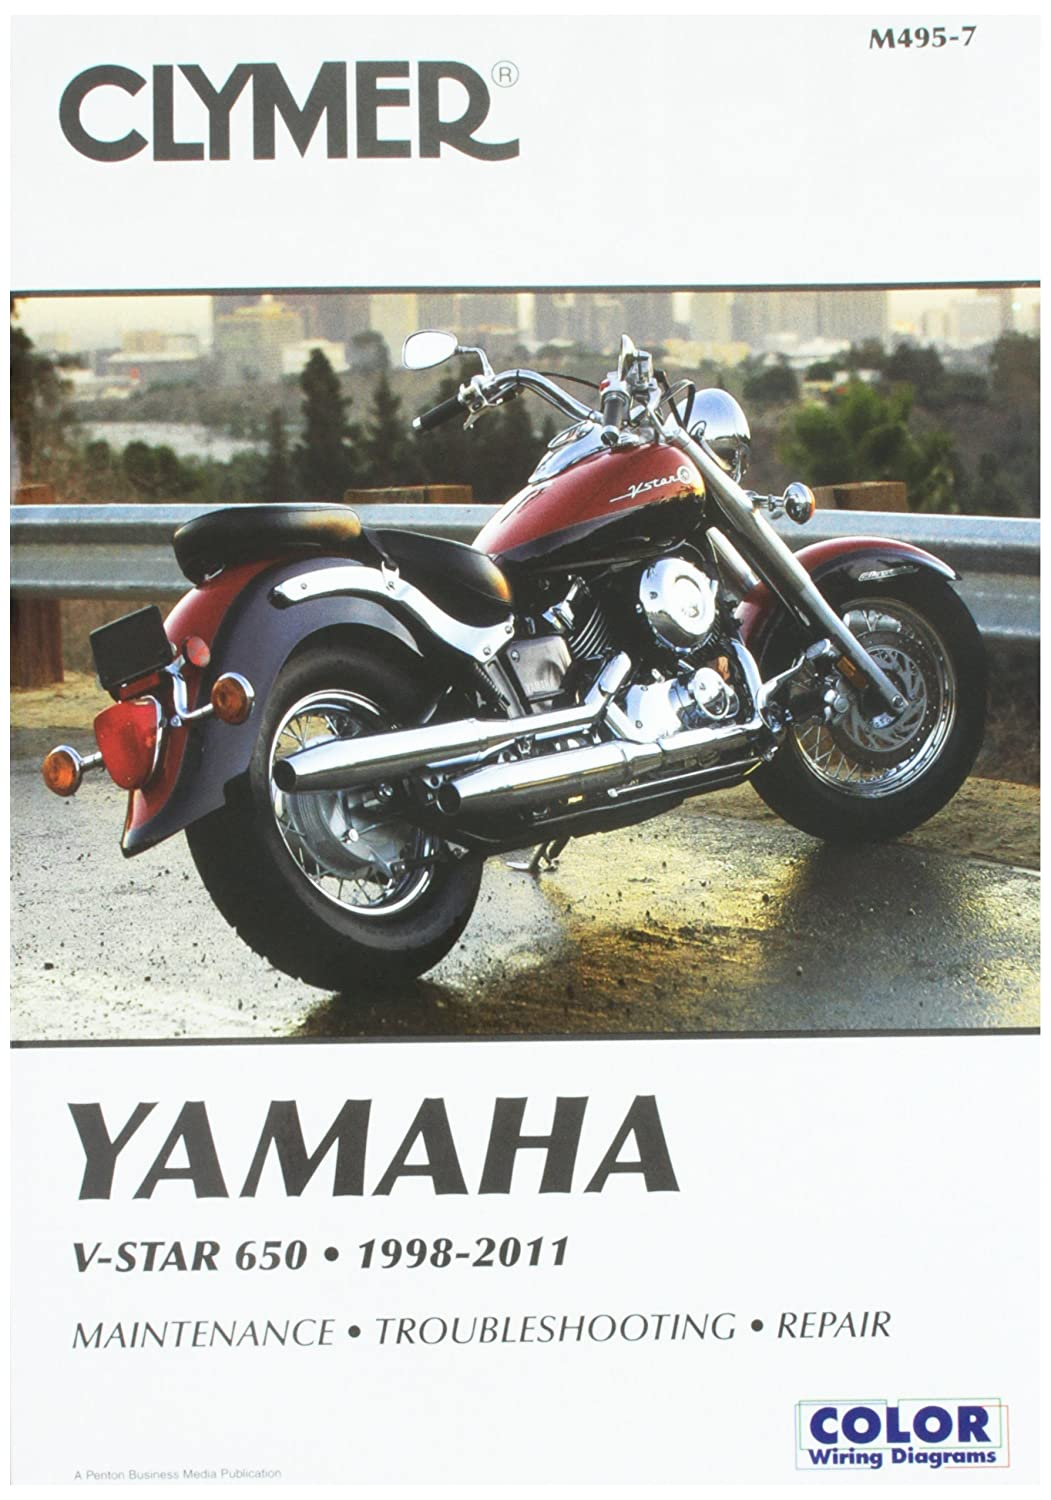 81wn7OvCz7L._SL1500_ amazon com clymer yamaha v star 650 (1998 2011) ronwright yamaha v star 650 wiring diagram at aneh.co